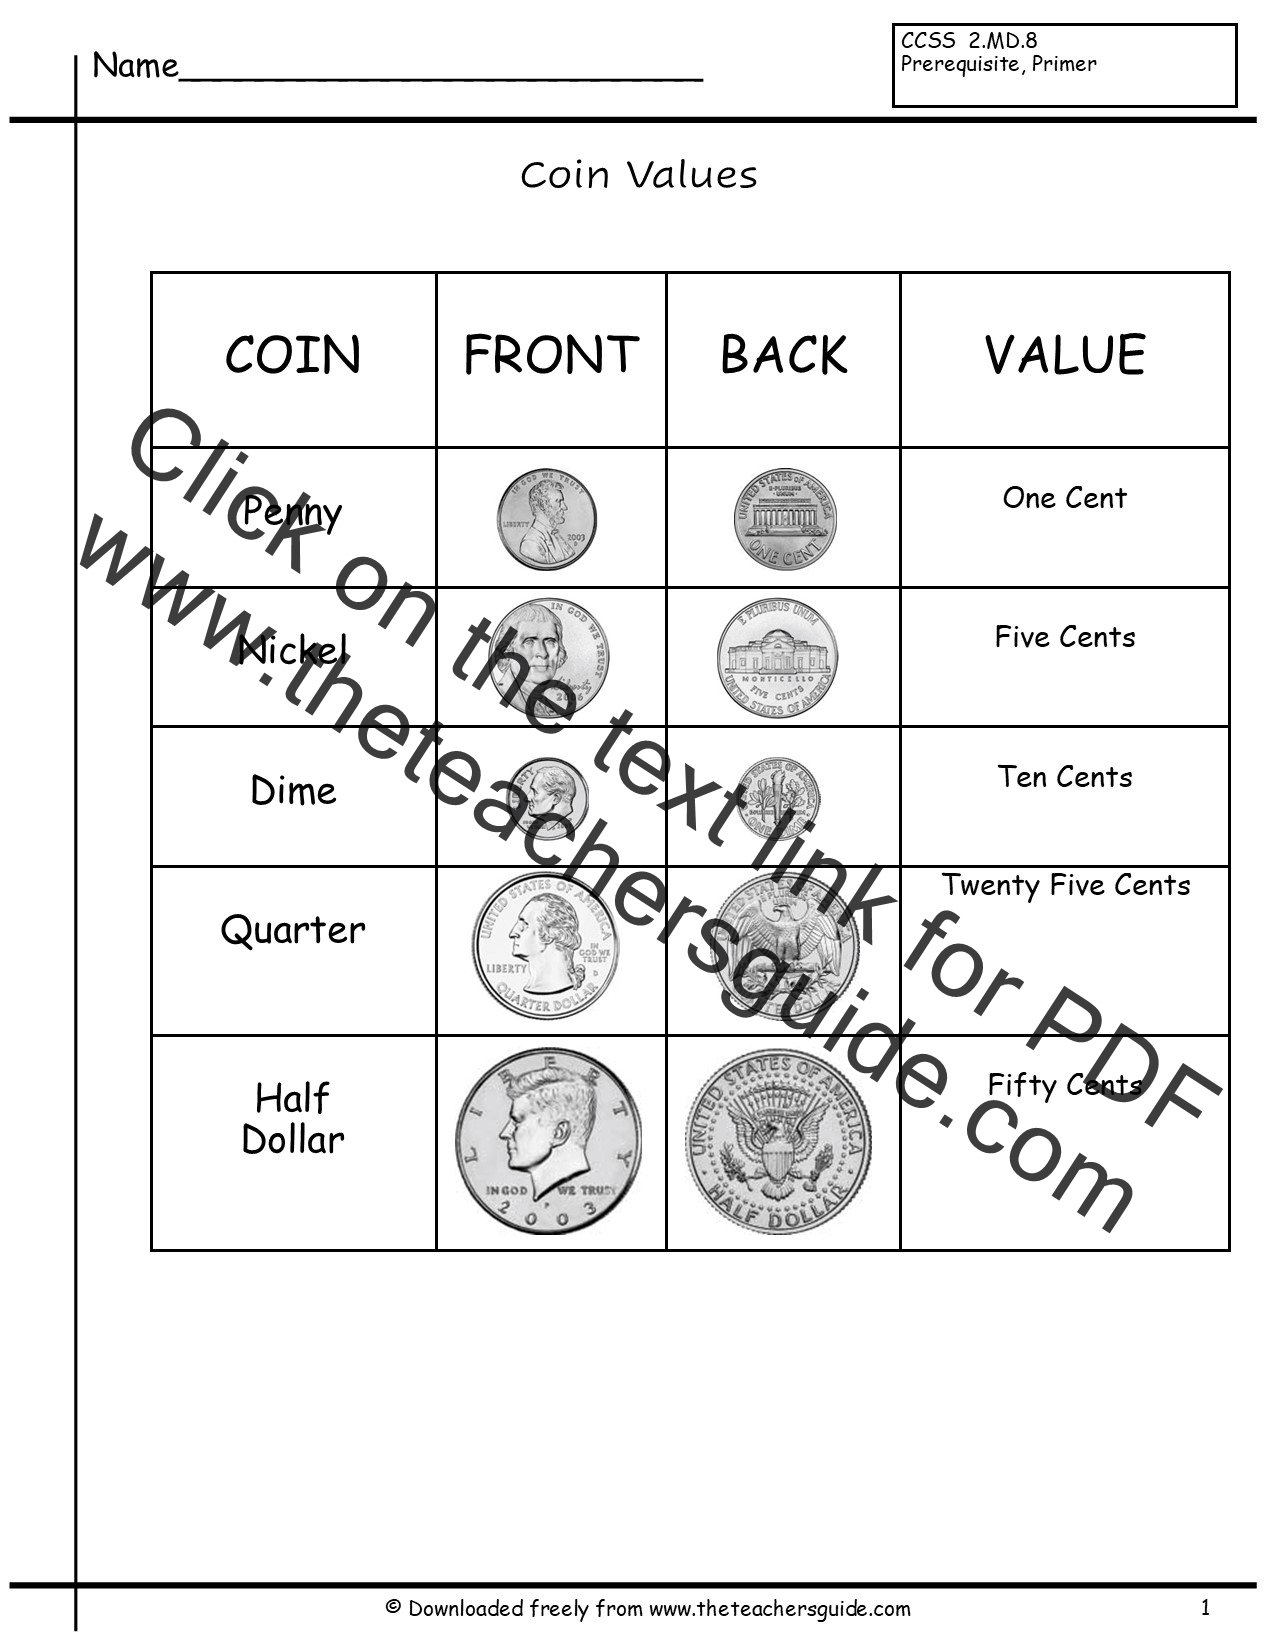 Worksheet On Coins